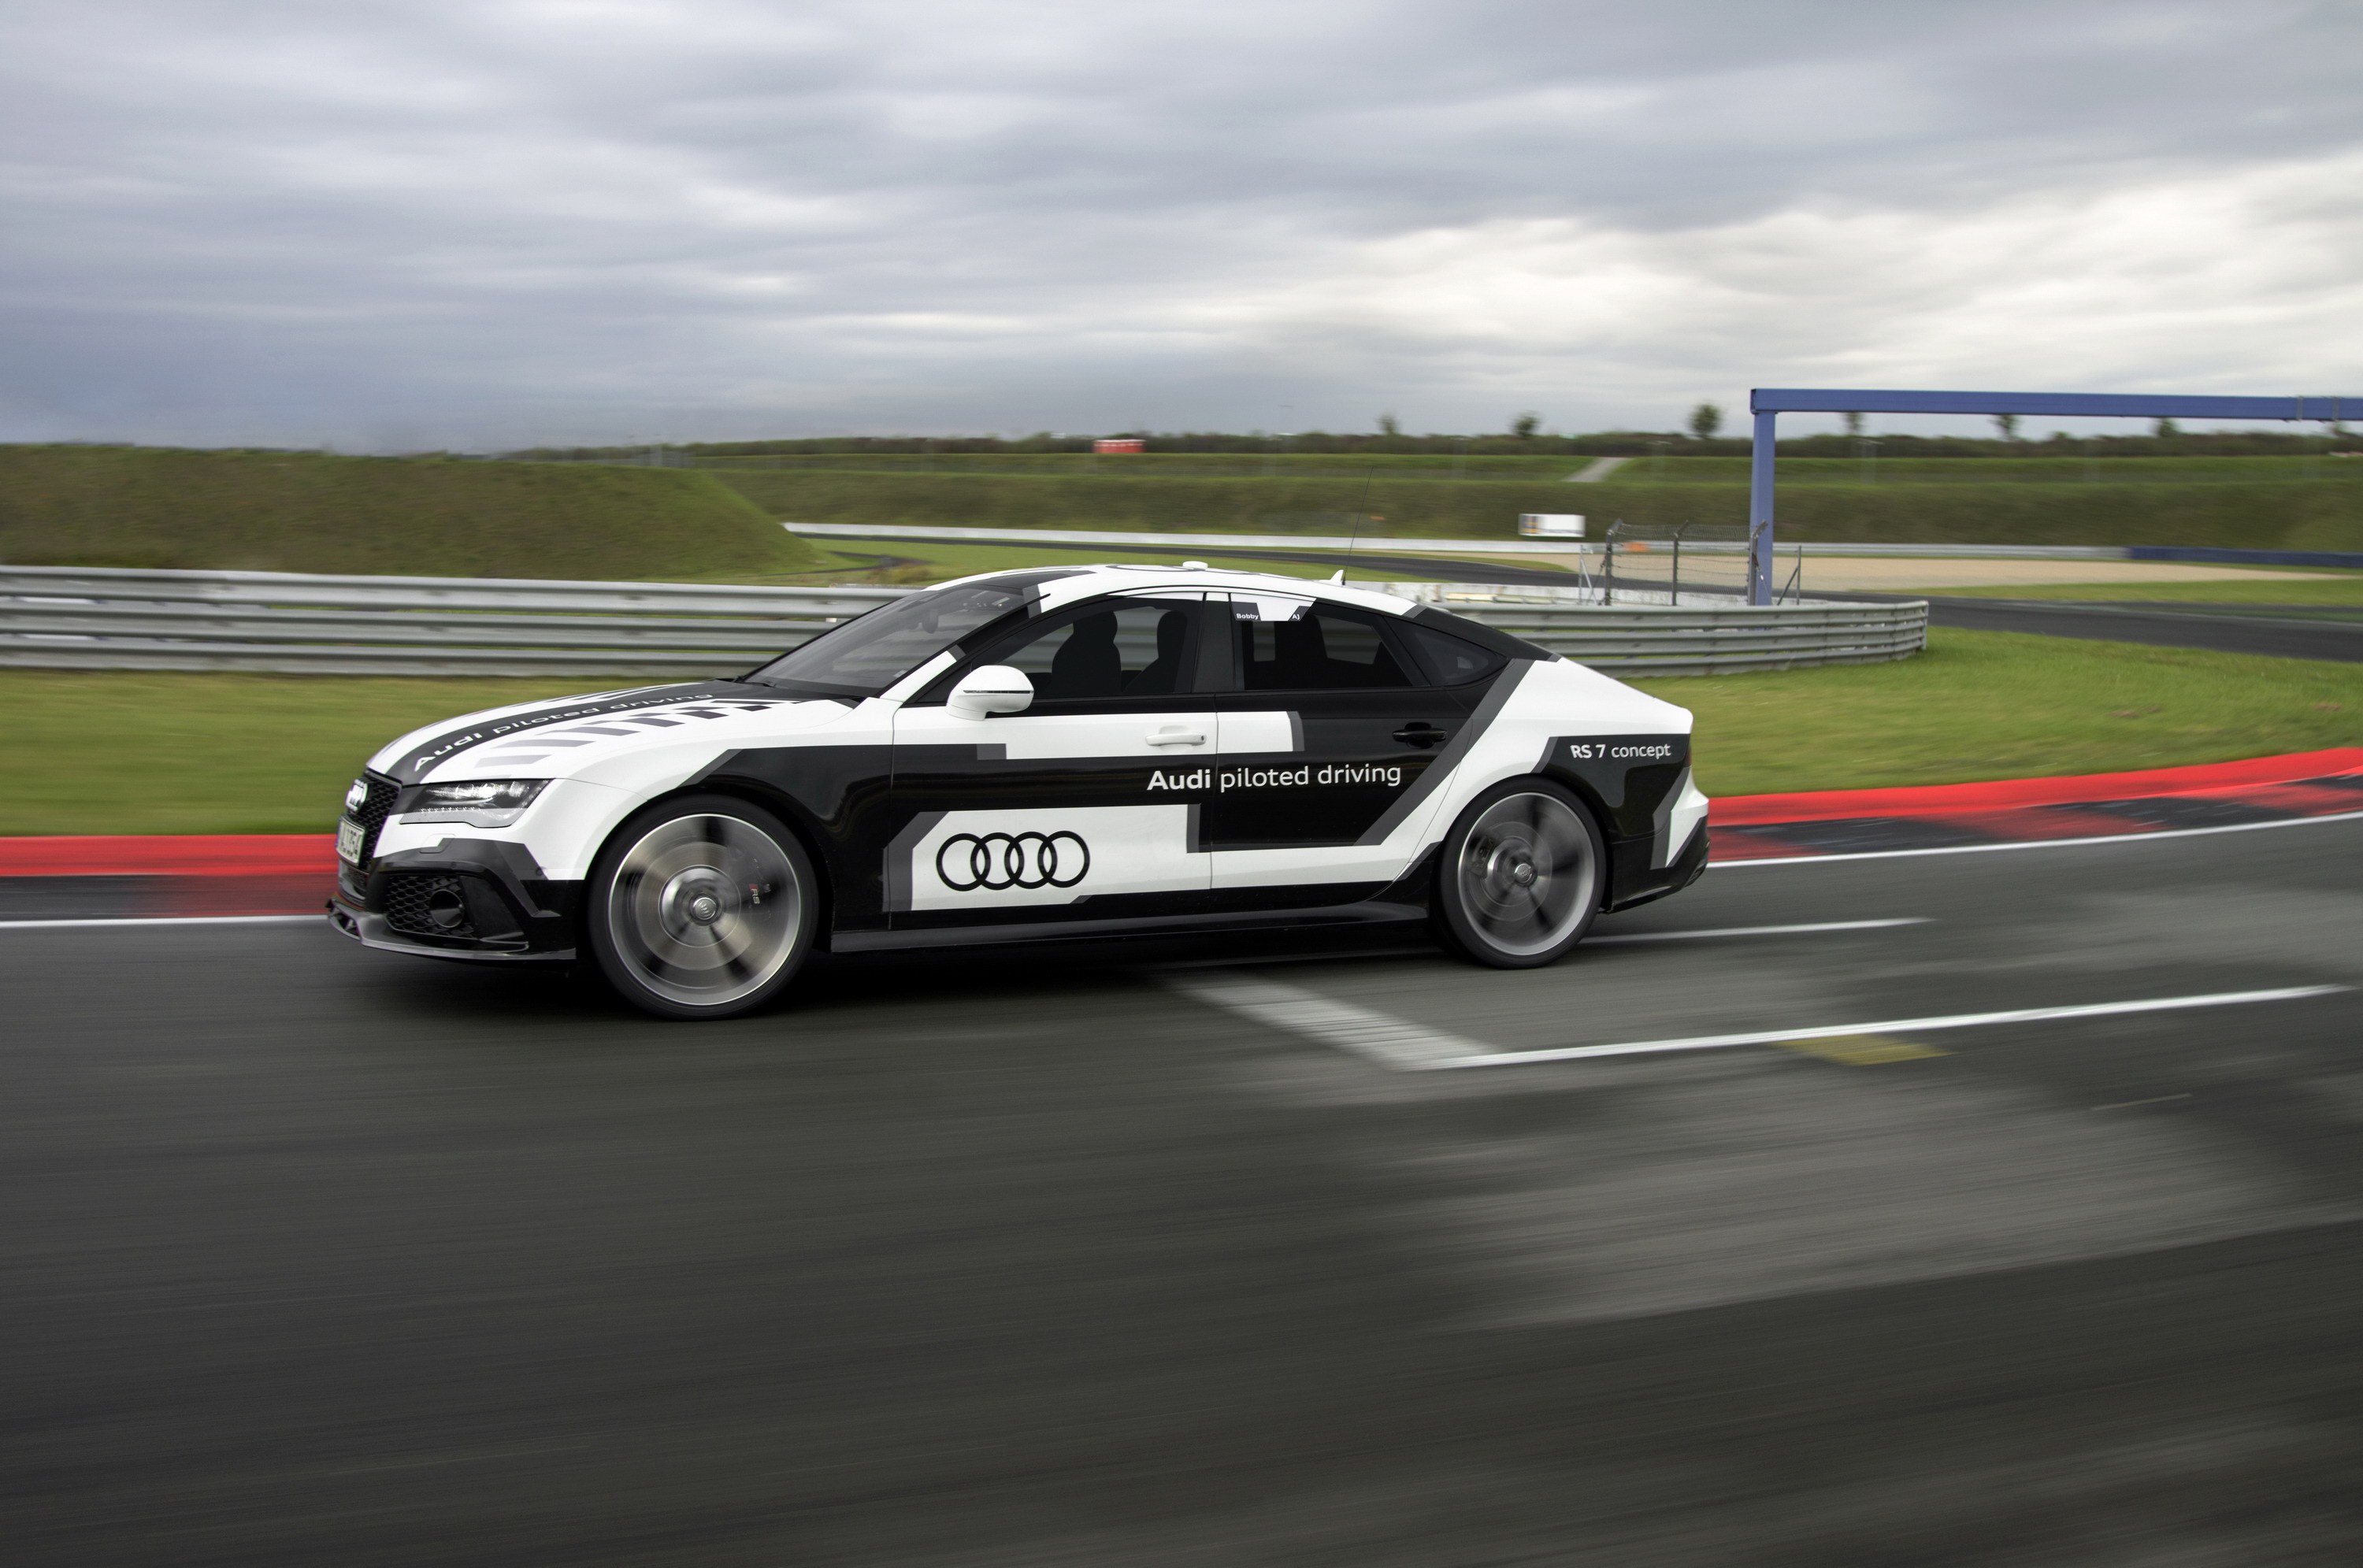 Audi Piloted Driving >> 2015 Audi Rs7 Piloted Driving Concept Top Speed